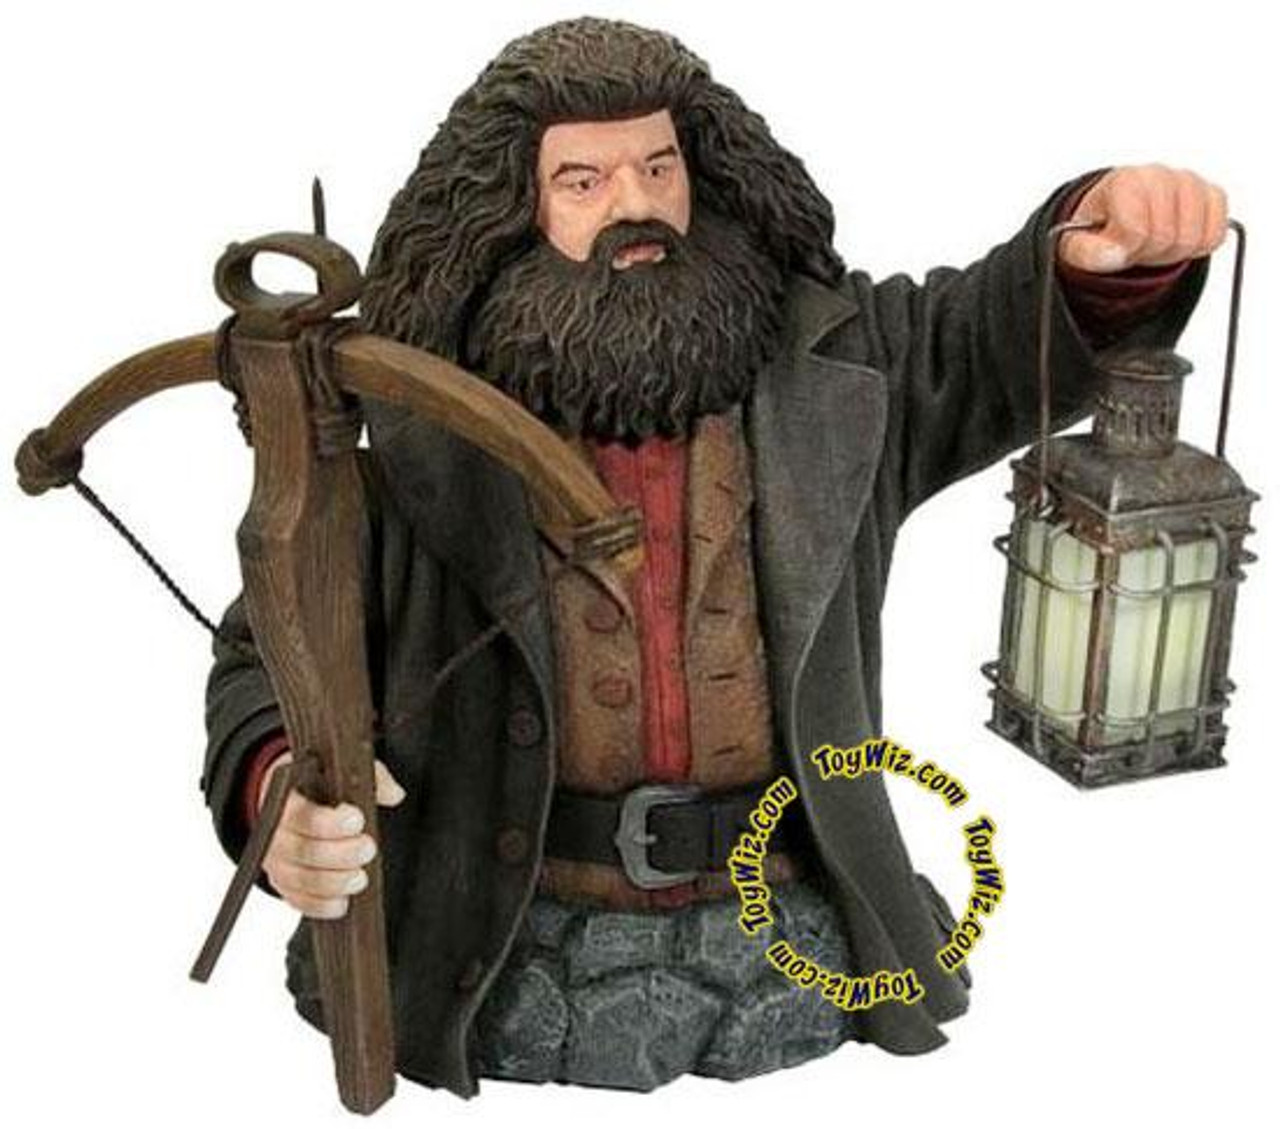 Harry Potter The Goblet of Fire Hagrid 7-Inch Bust